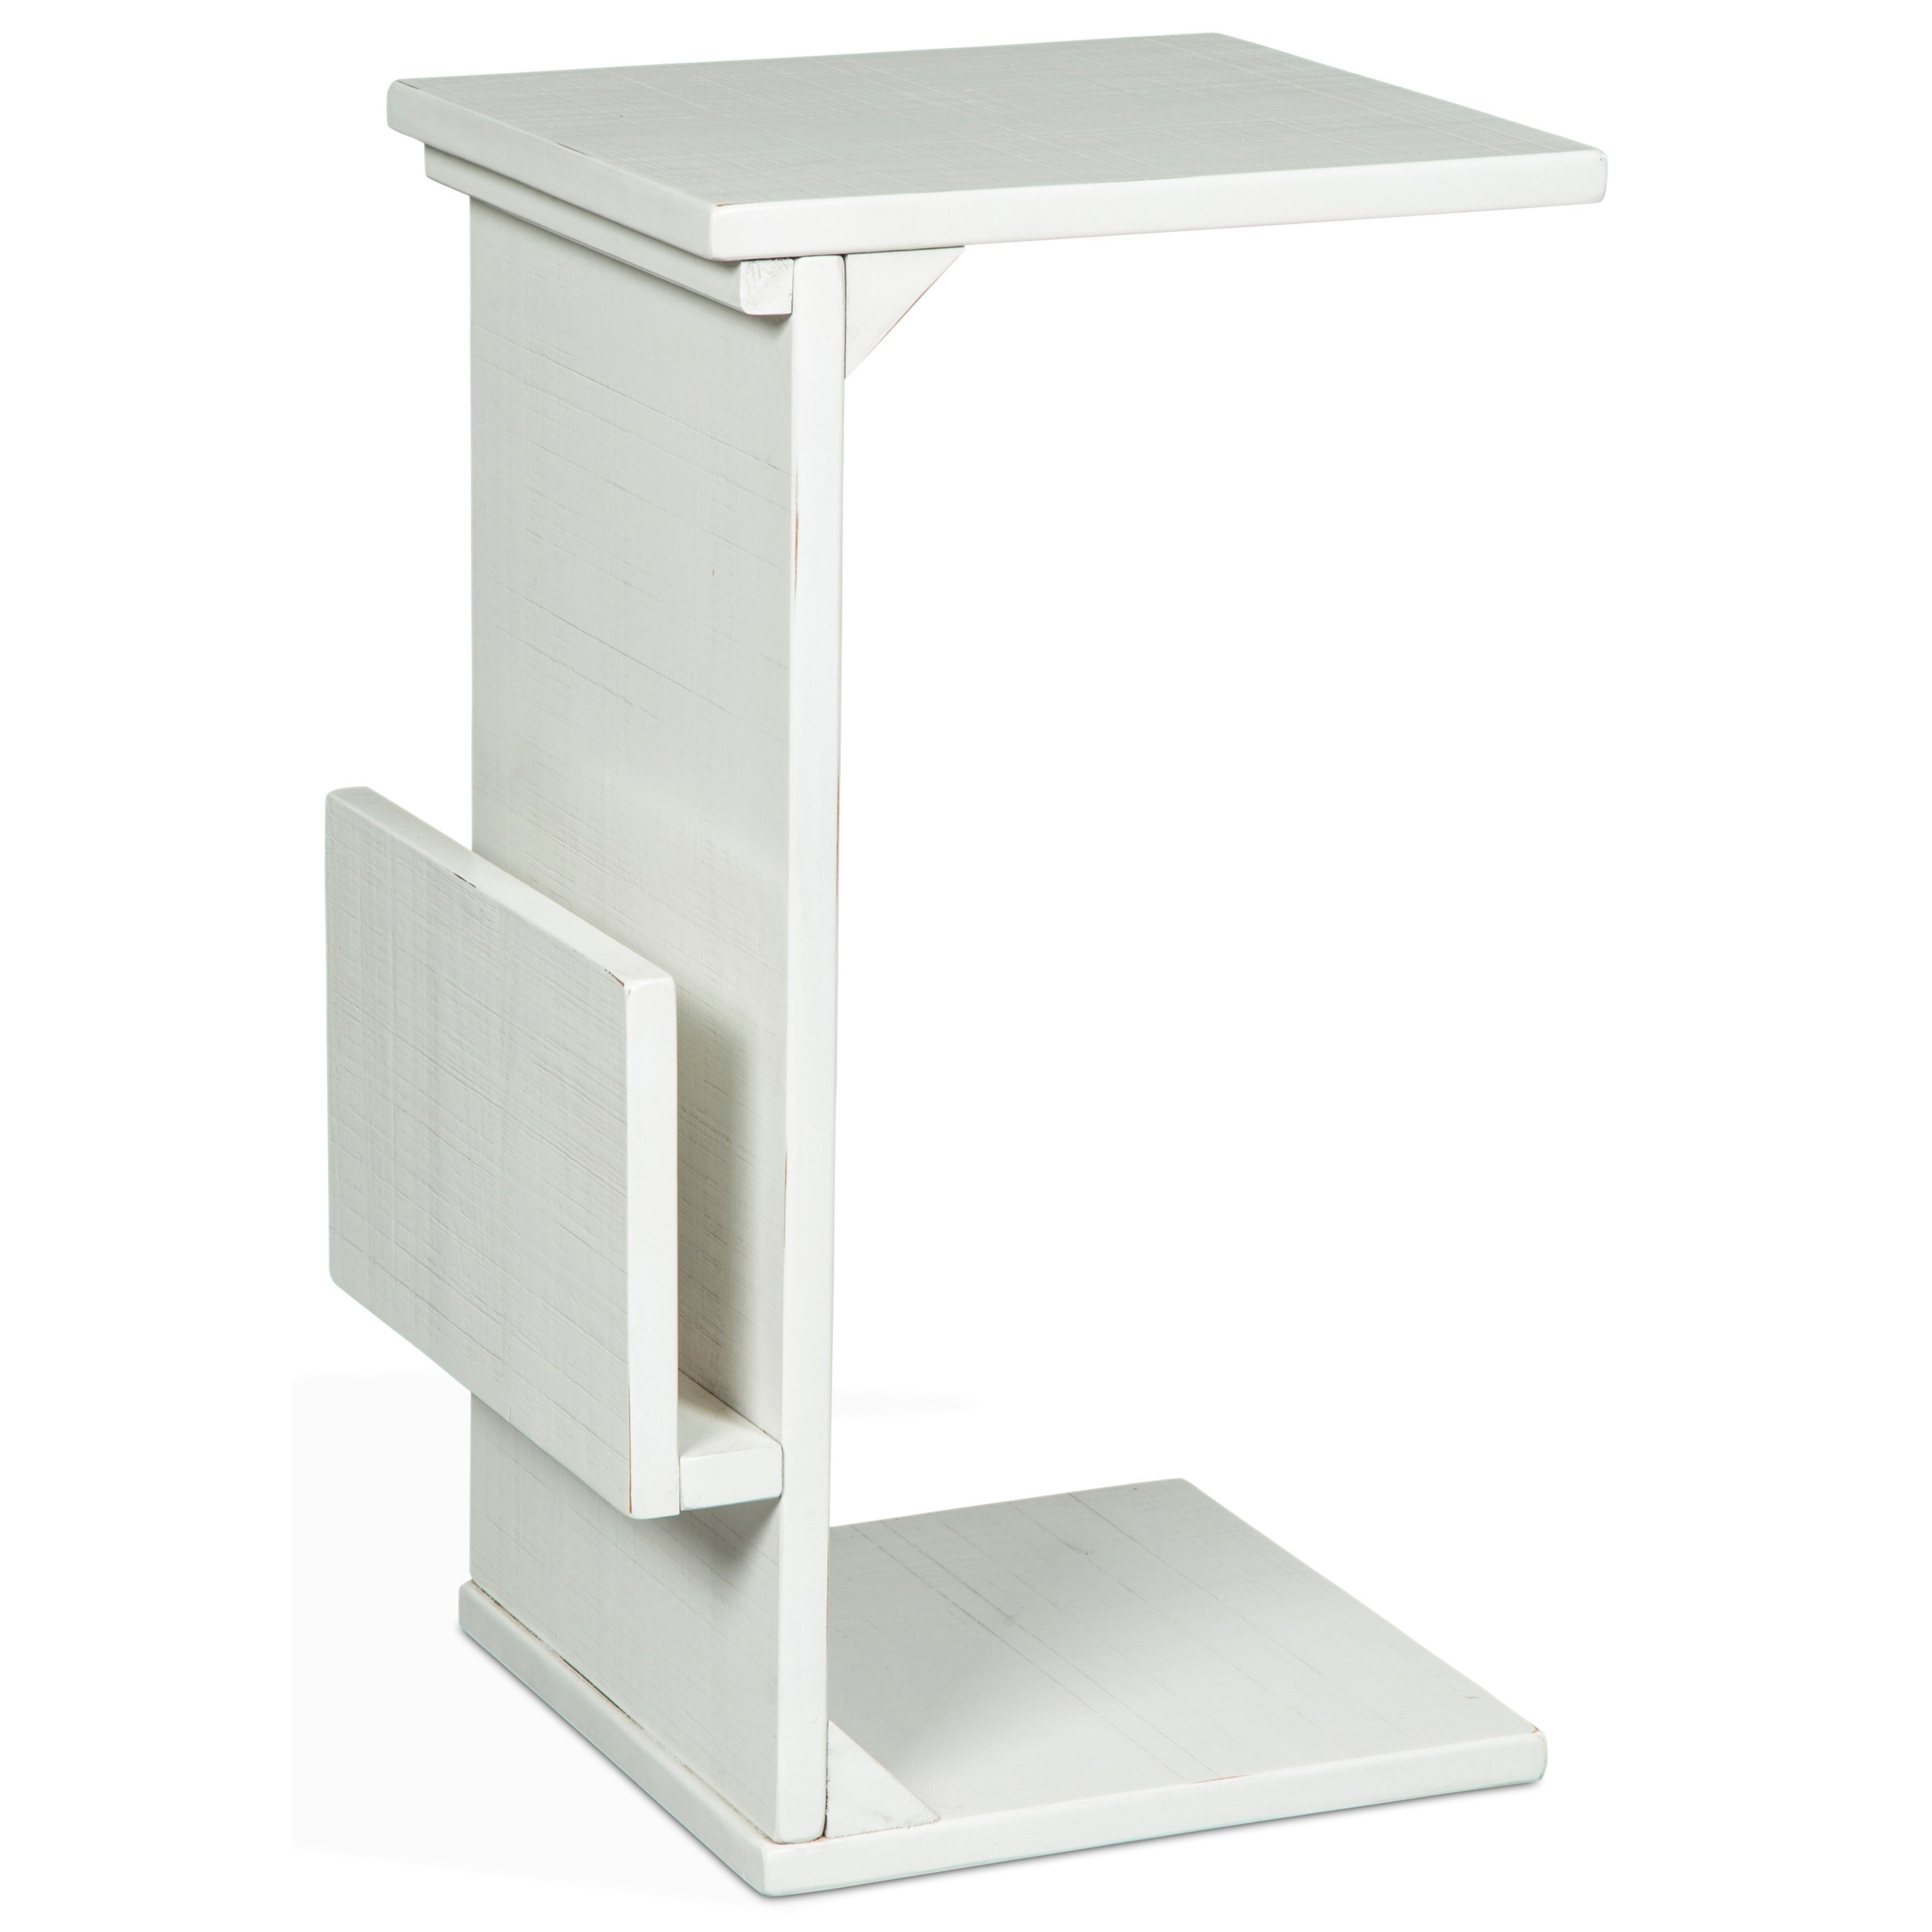 2029 Chairside Table w/ Magazine Rack by Sunny Designs at Wilson's Furniture